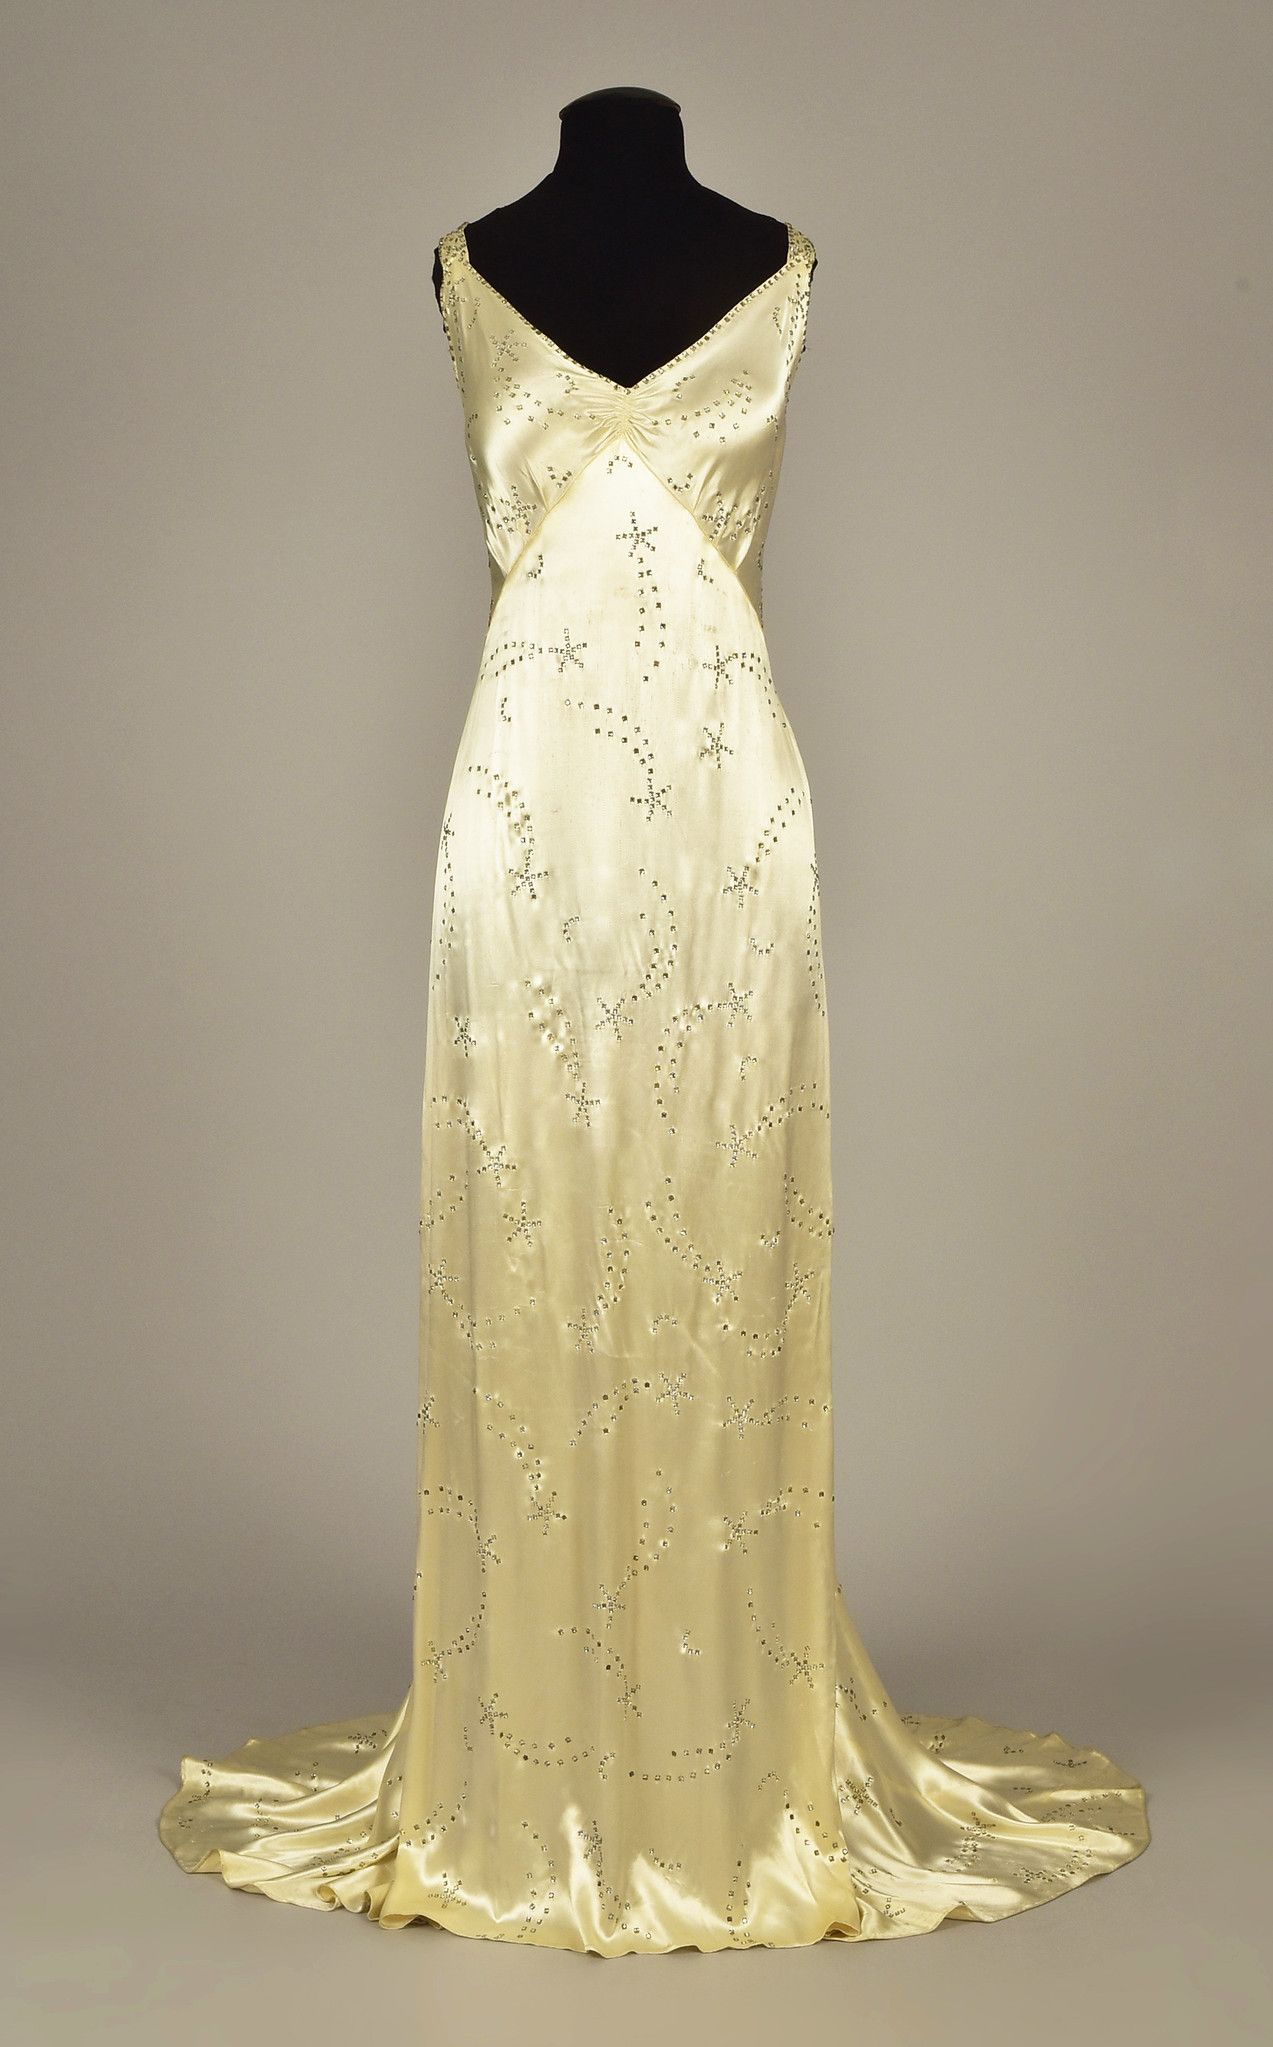 95b771a93413 LOT 615 WHITE SATIN GOWN with DIAMANTE, 1930s - whitakerauction in ...